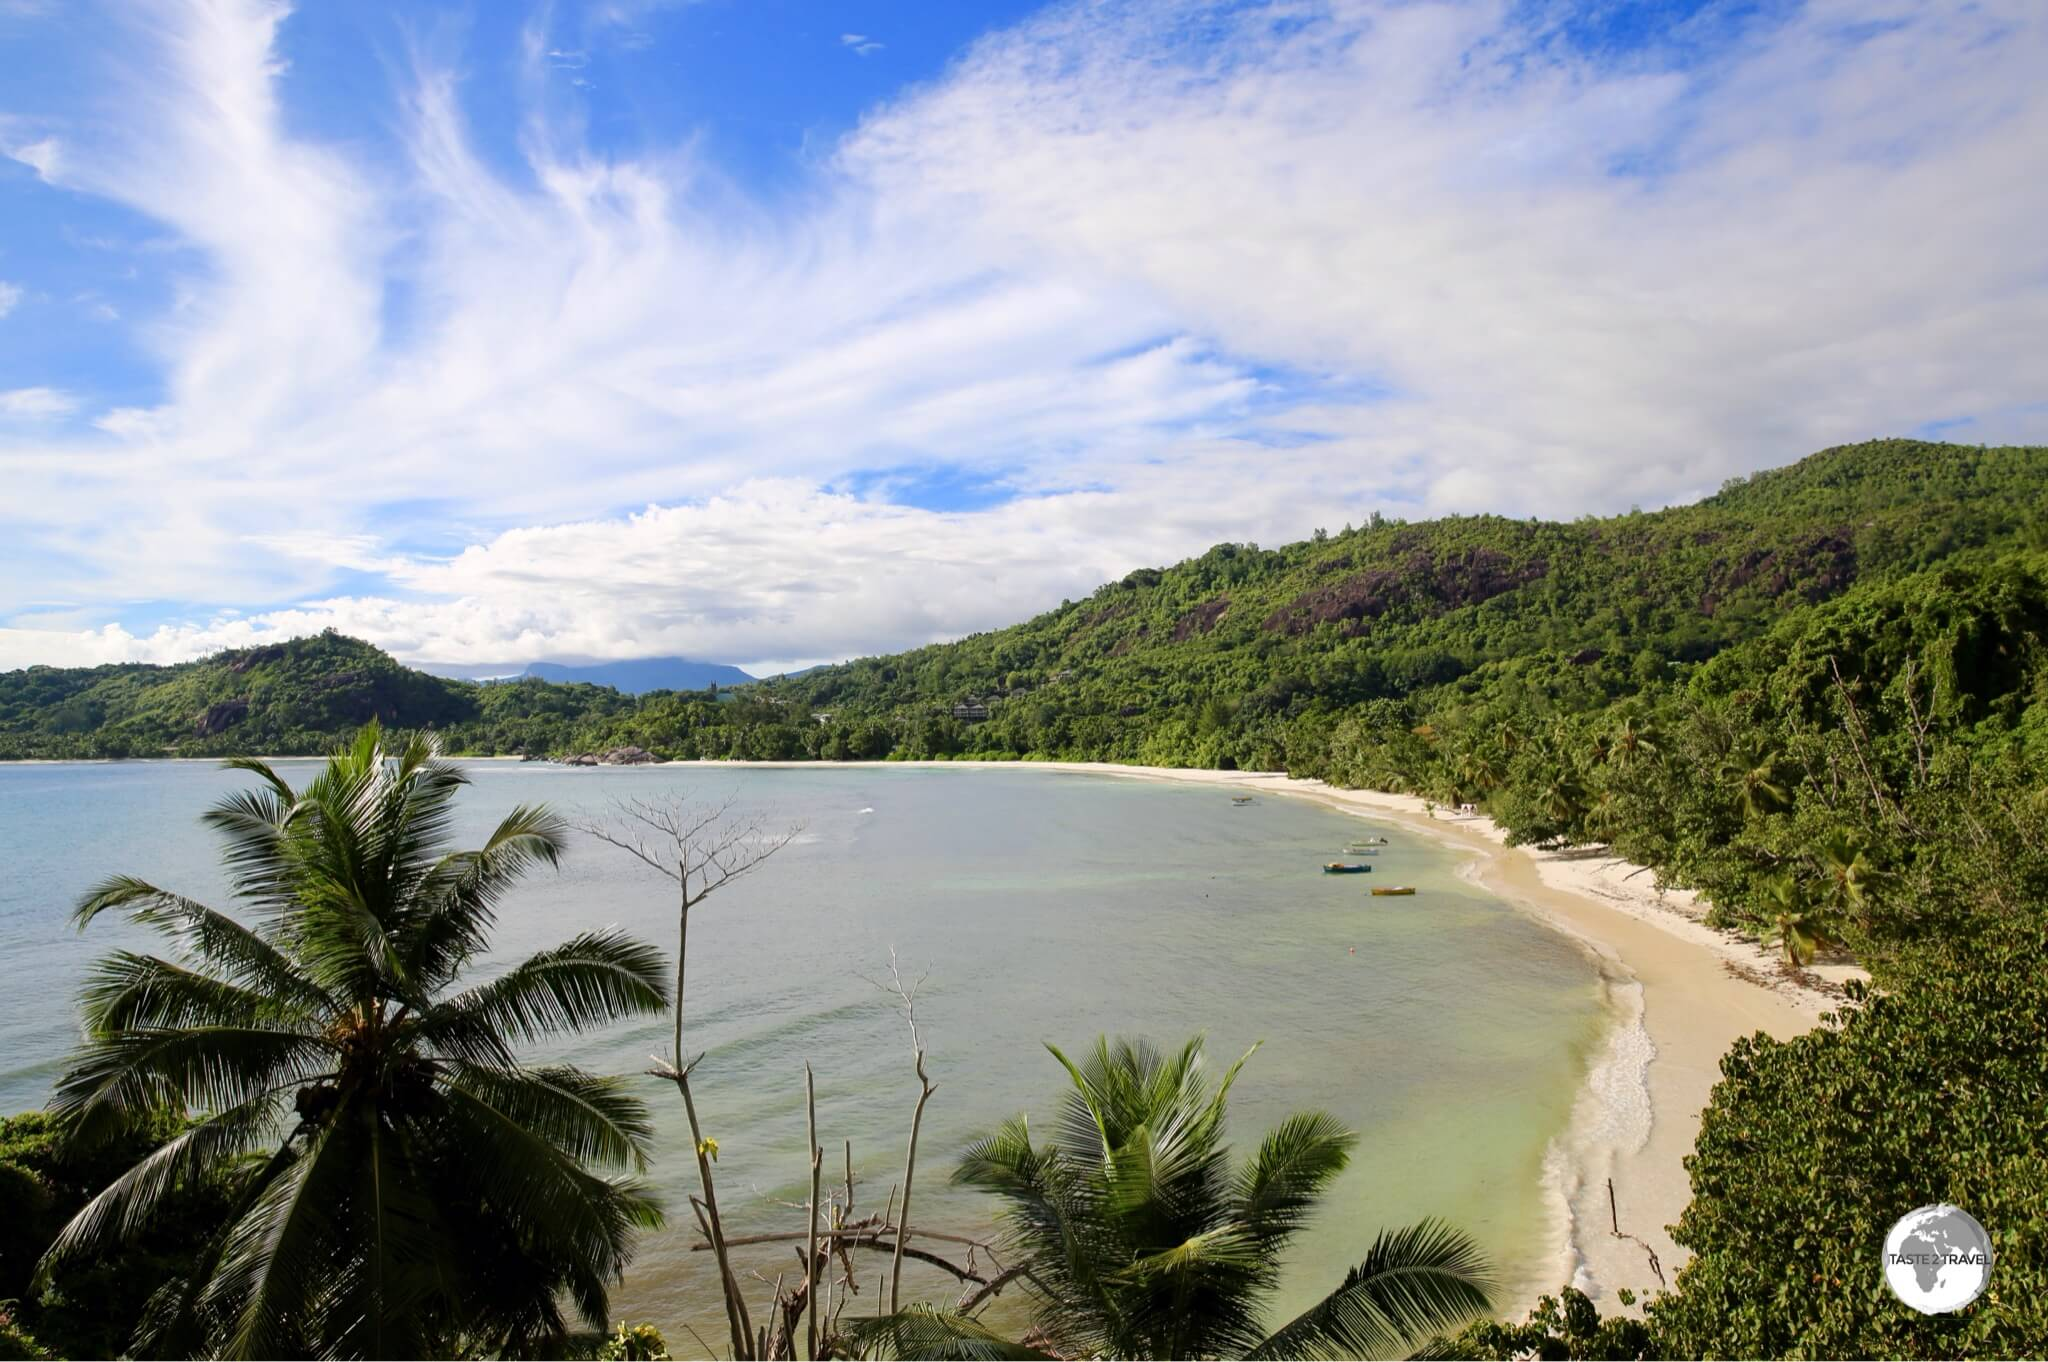 A panoramic view over Baie Lazare, one of the finest beaches on the south-west coast of Mahé .